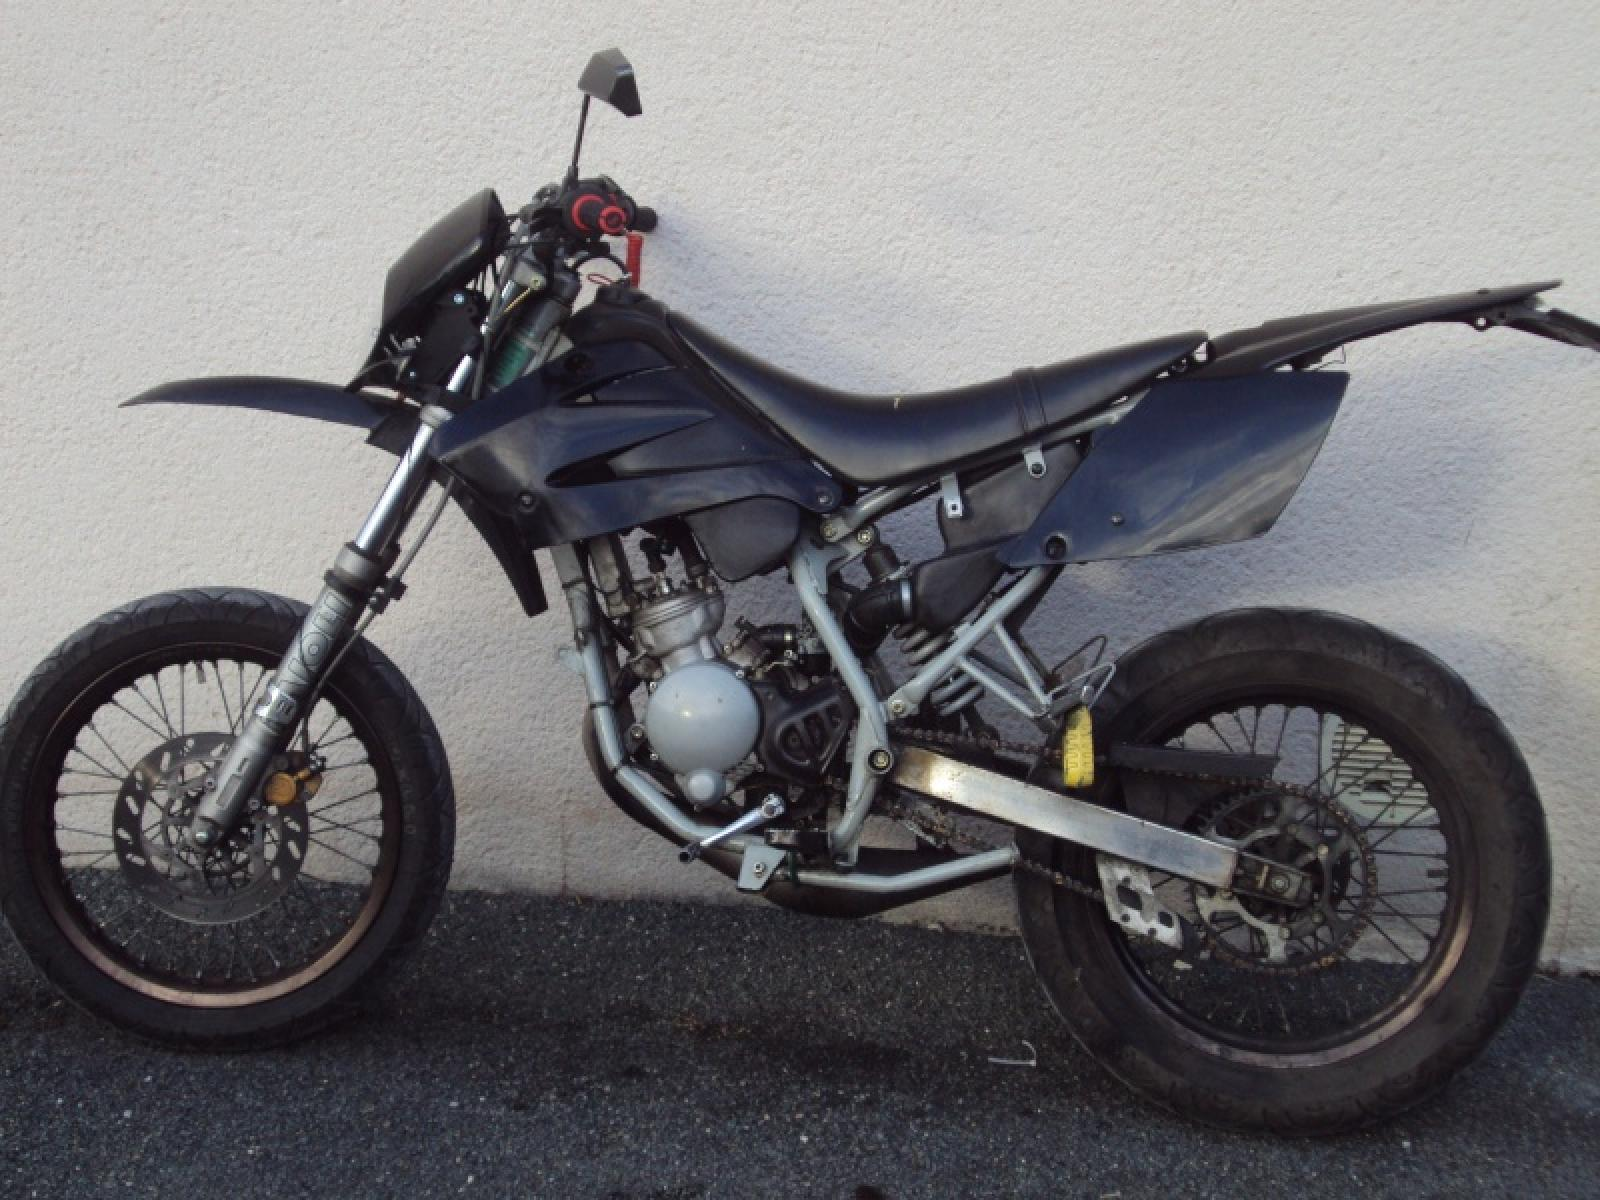 Peugeot Xps Sm Wiring Diagram Free Download Lights 2006 Super Motard Moto Zombdrive Com Furthermore A Potentiometer For Motor Along With